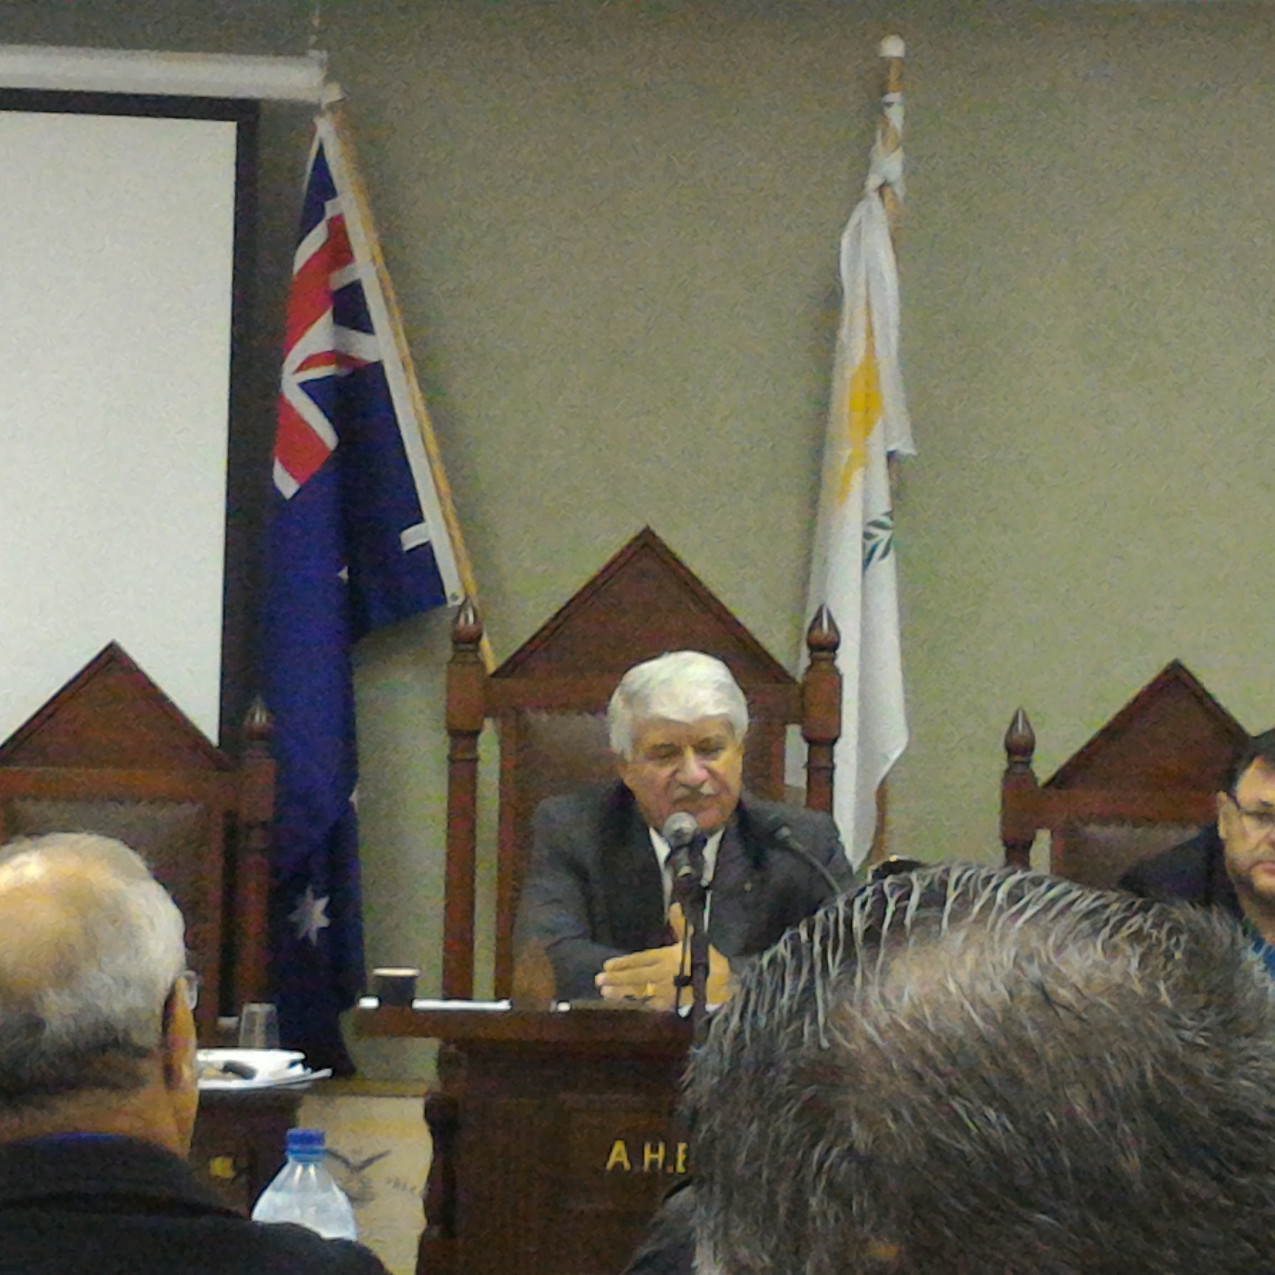 AHEPA NSW 61 State Convention